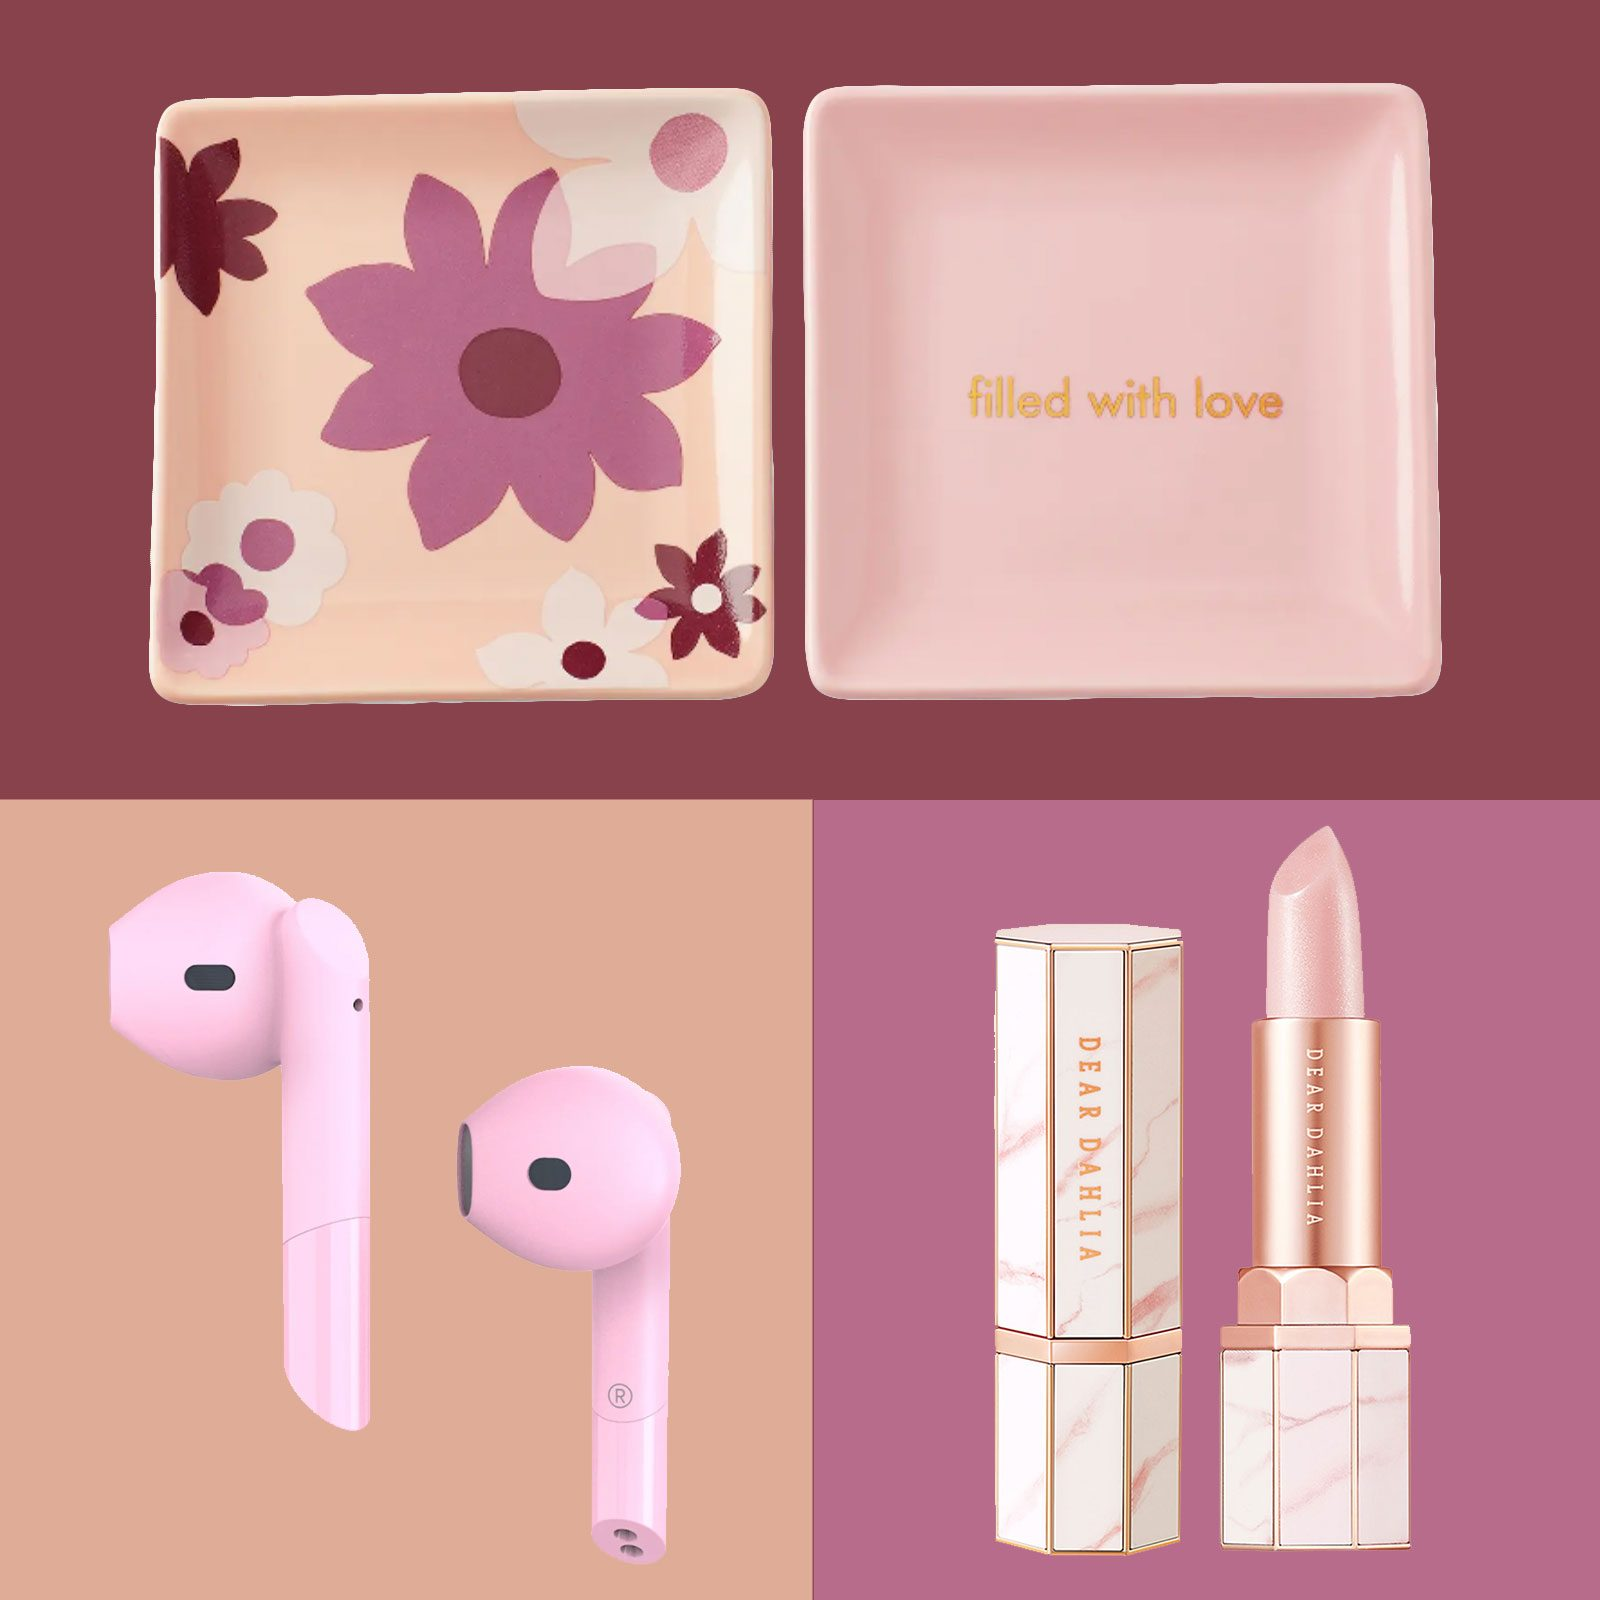 Three gifts, pink airpods, pink lipstick, and pink jewelry trays